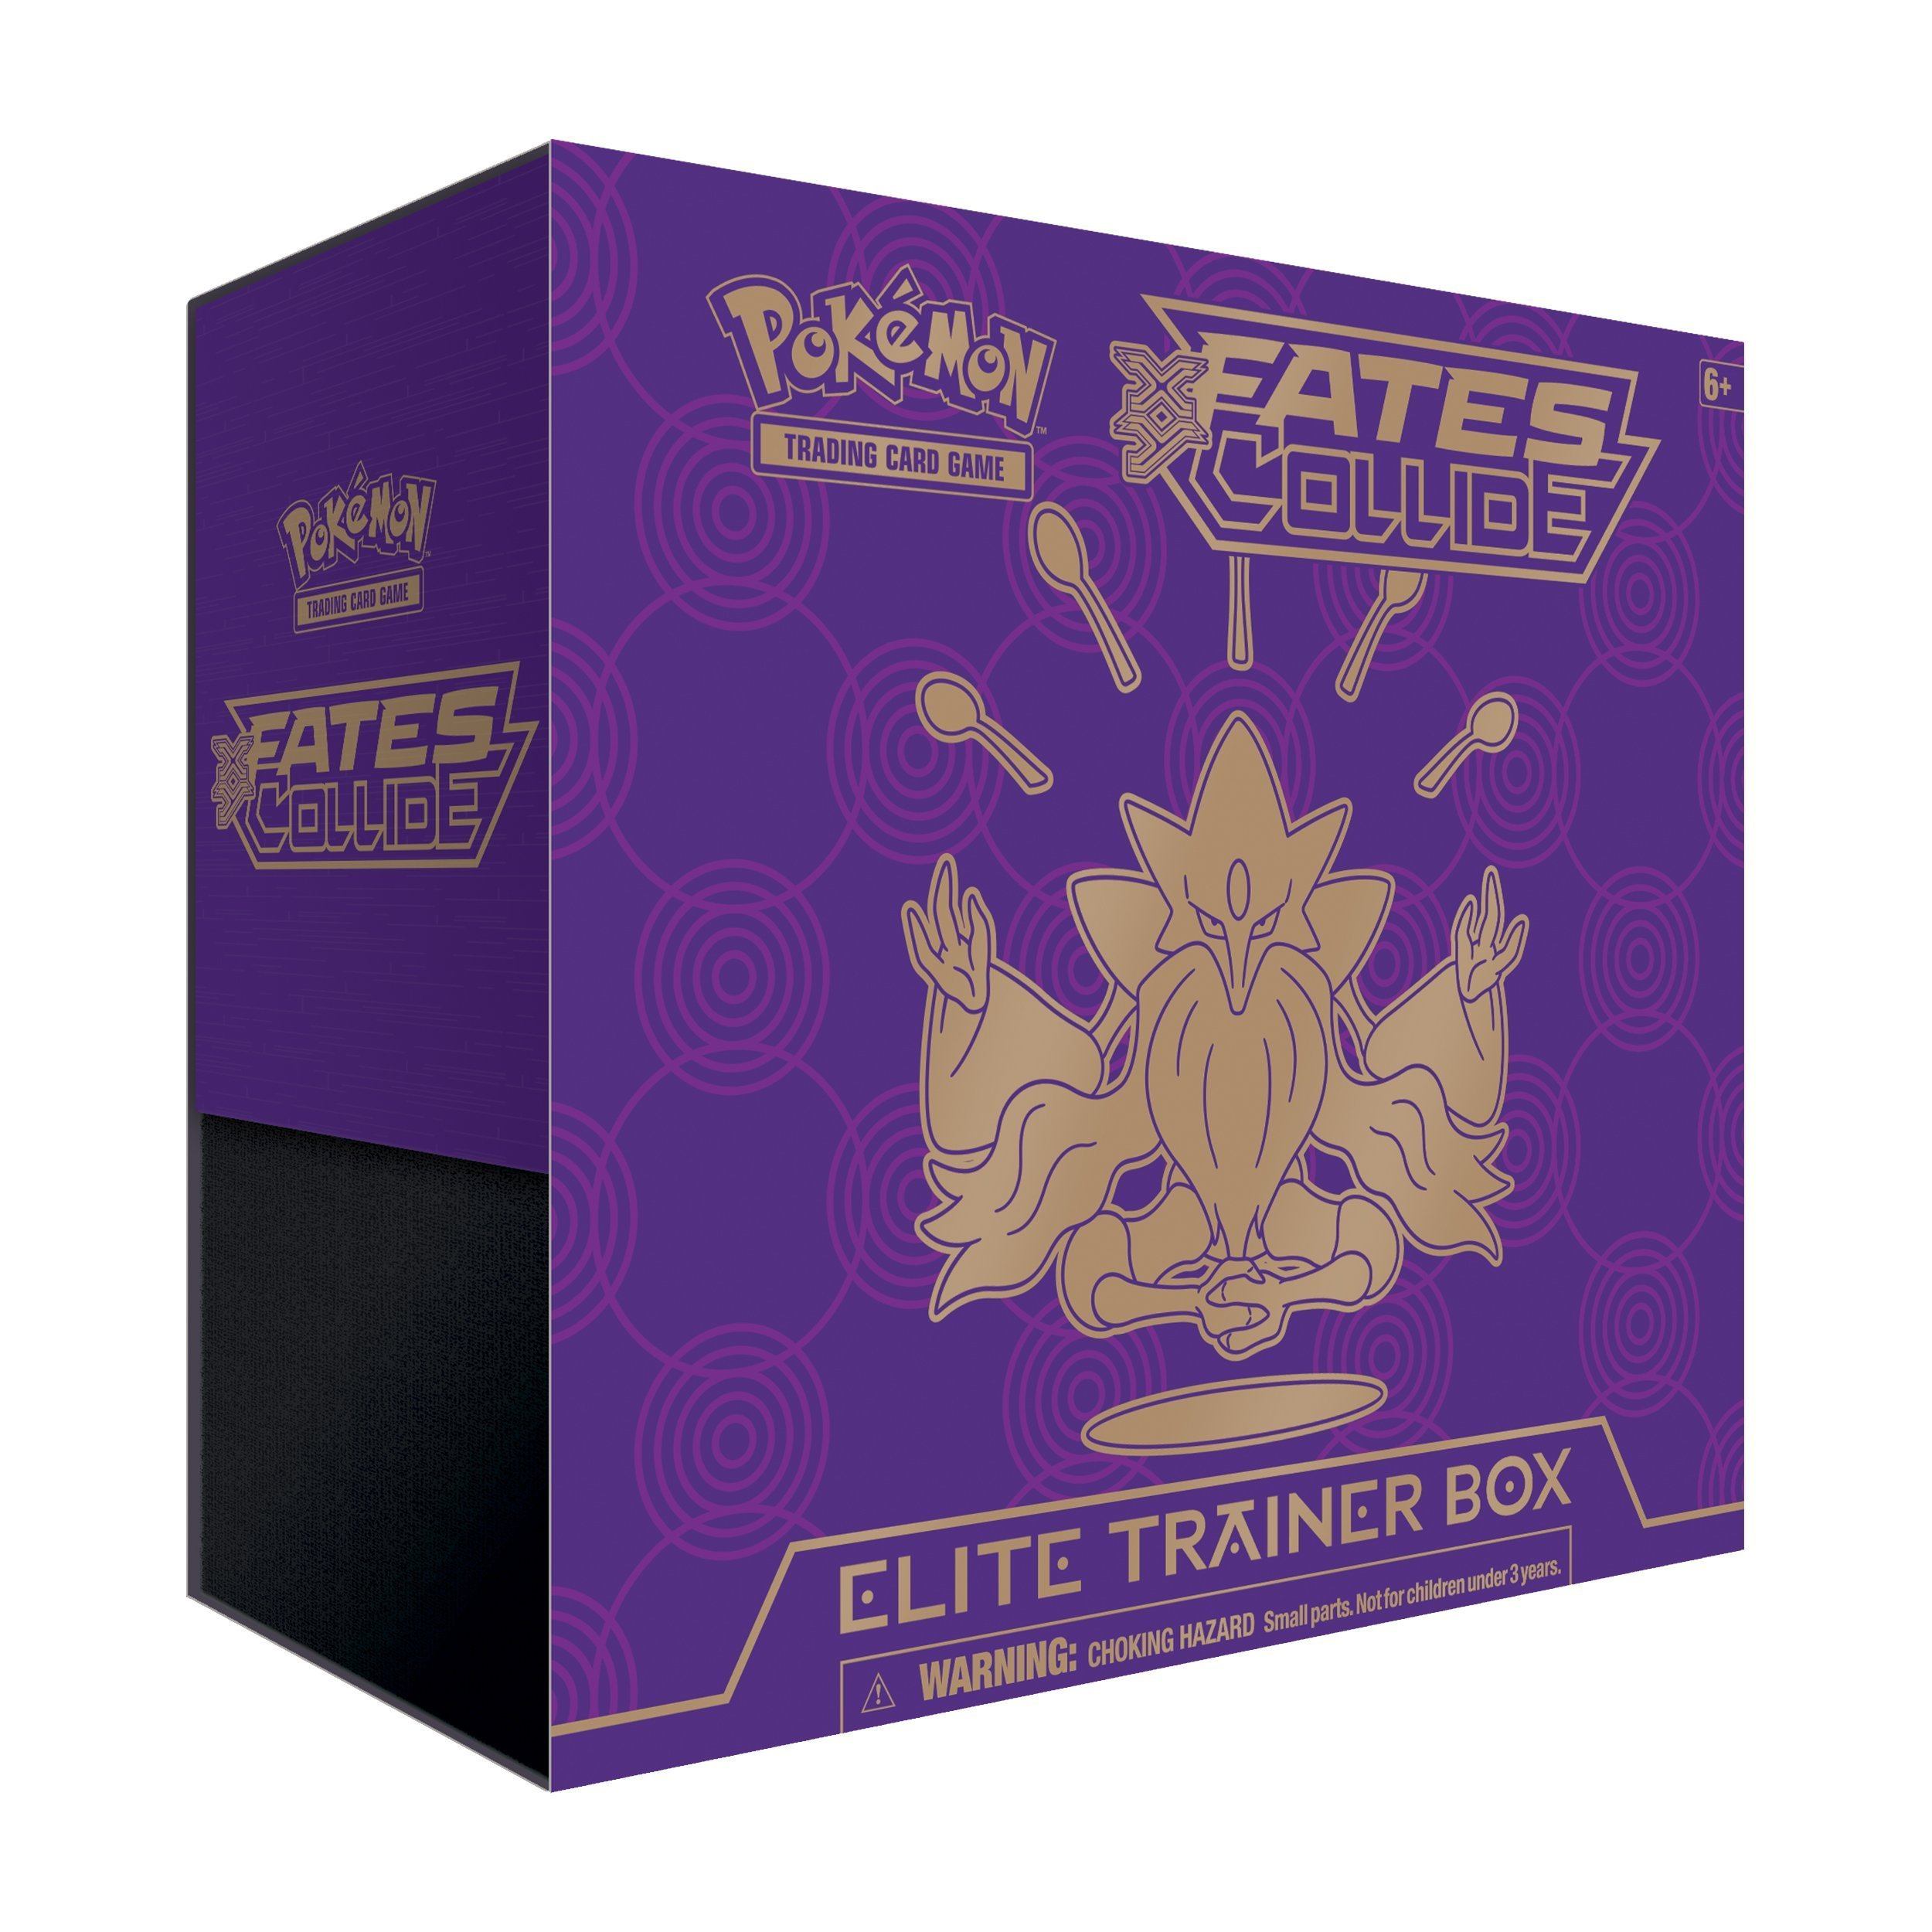 Pokemon TCG Elite Trainer Box XY - Fates Collide (Discontinued by manufacturer)